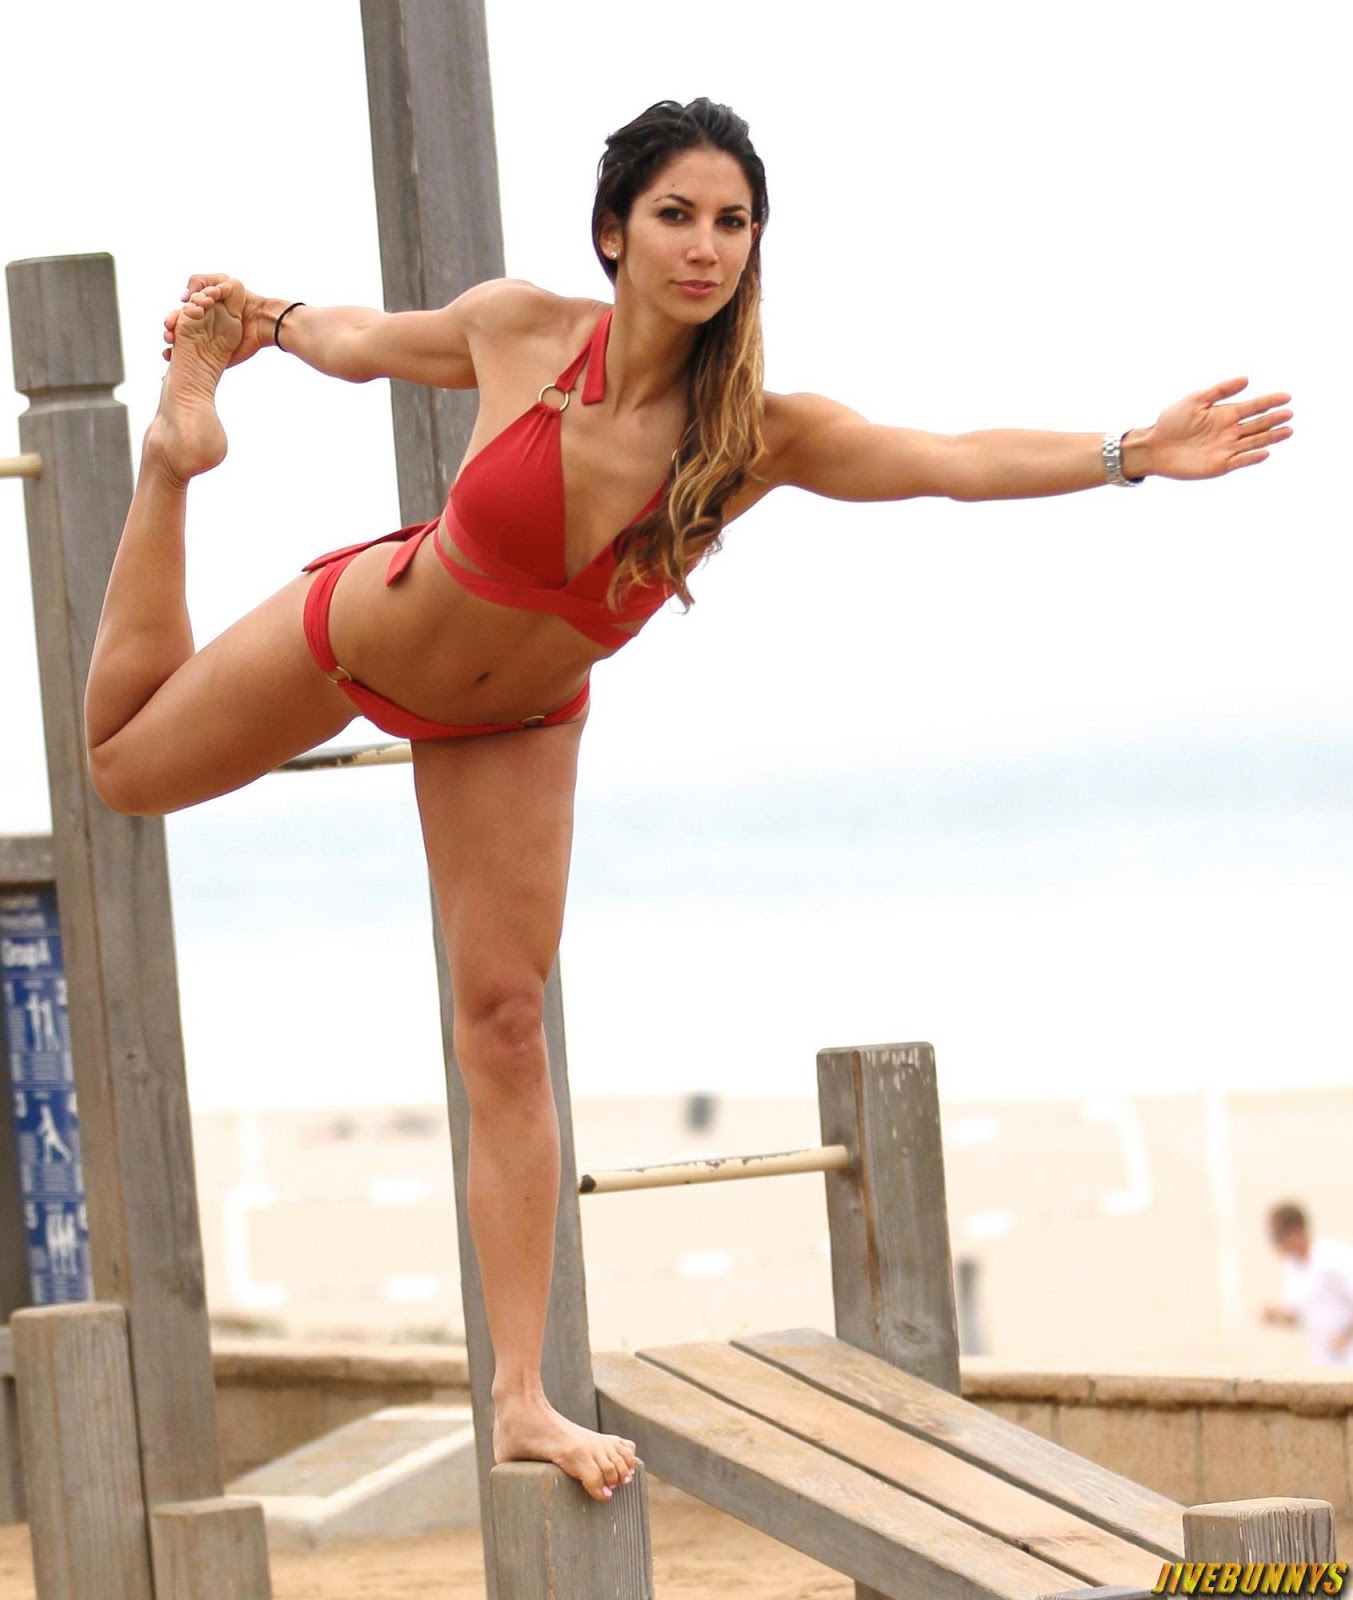 Jivebunnys Female Celebrity Picture Gallery: Leilani Dowding Glamour ... Beyonce Knowles